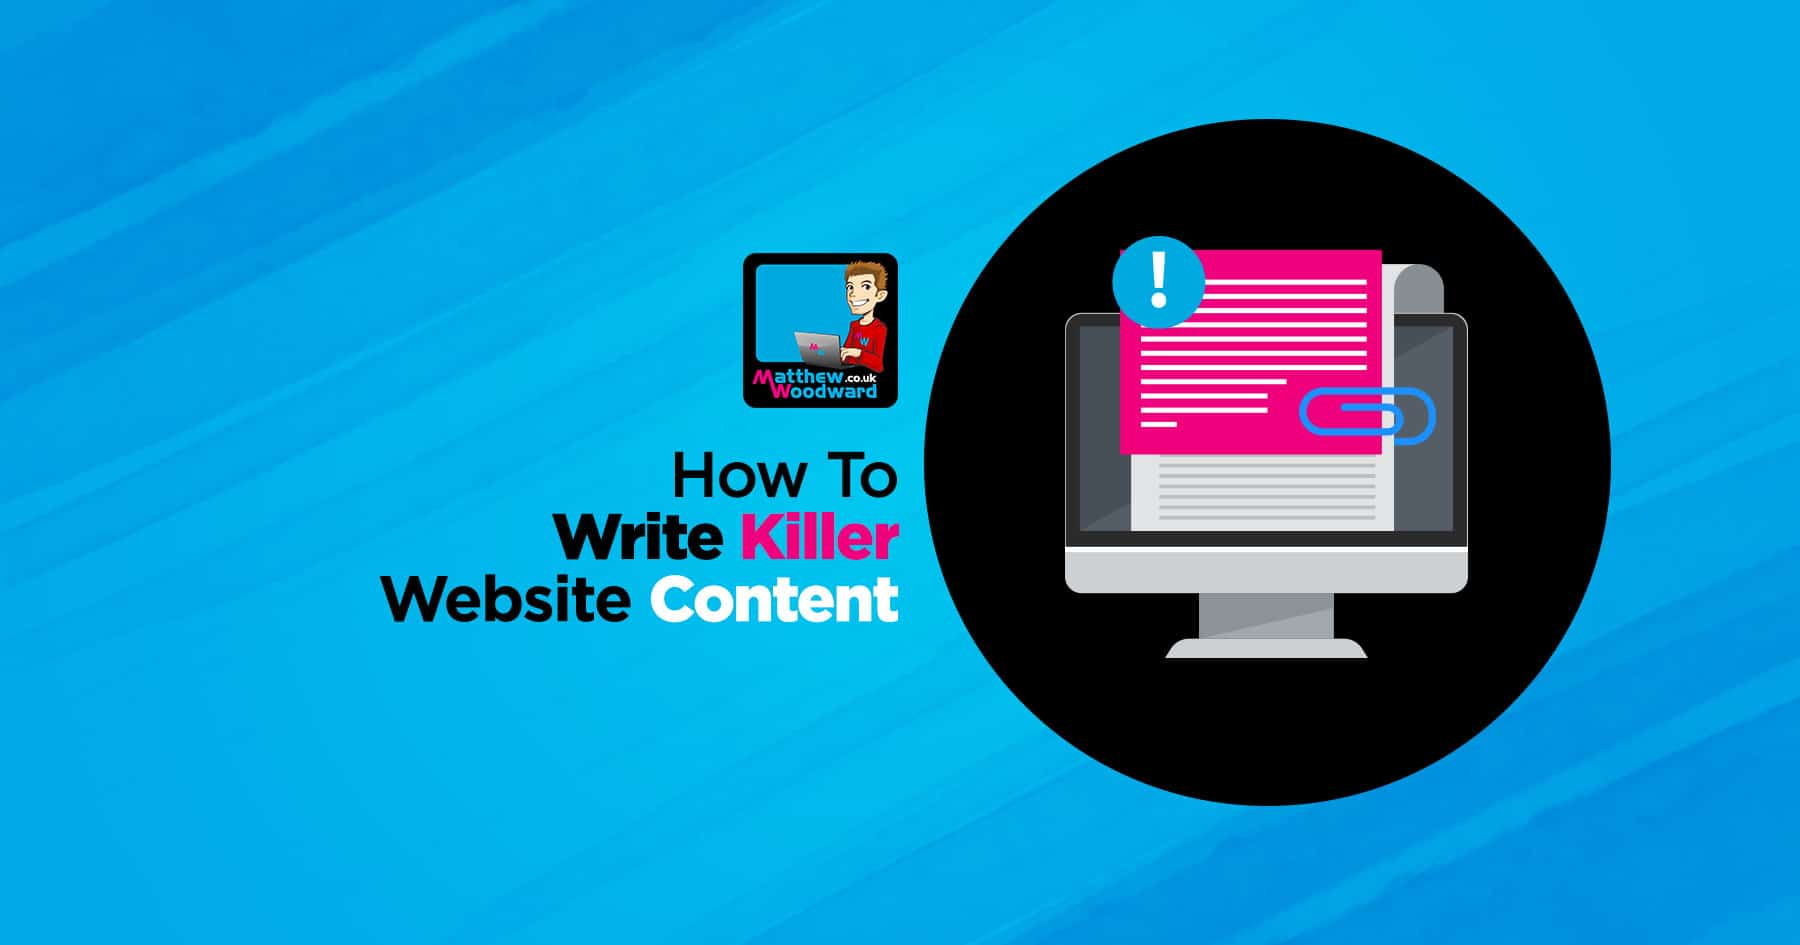 How To Write Killer Website Content That Attracts People